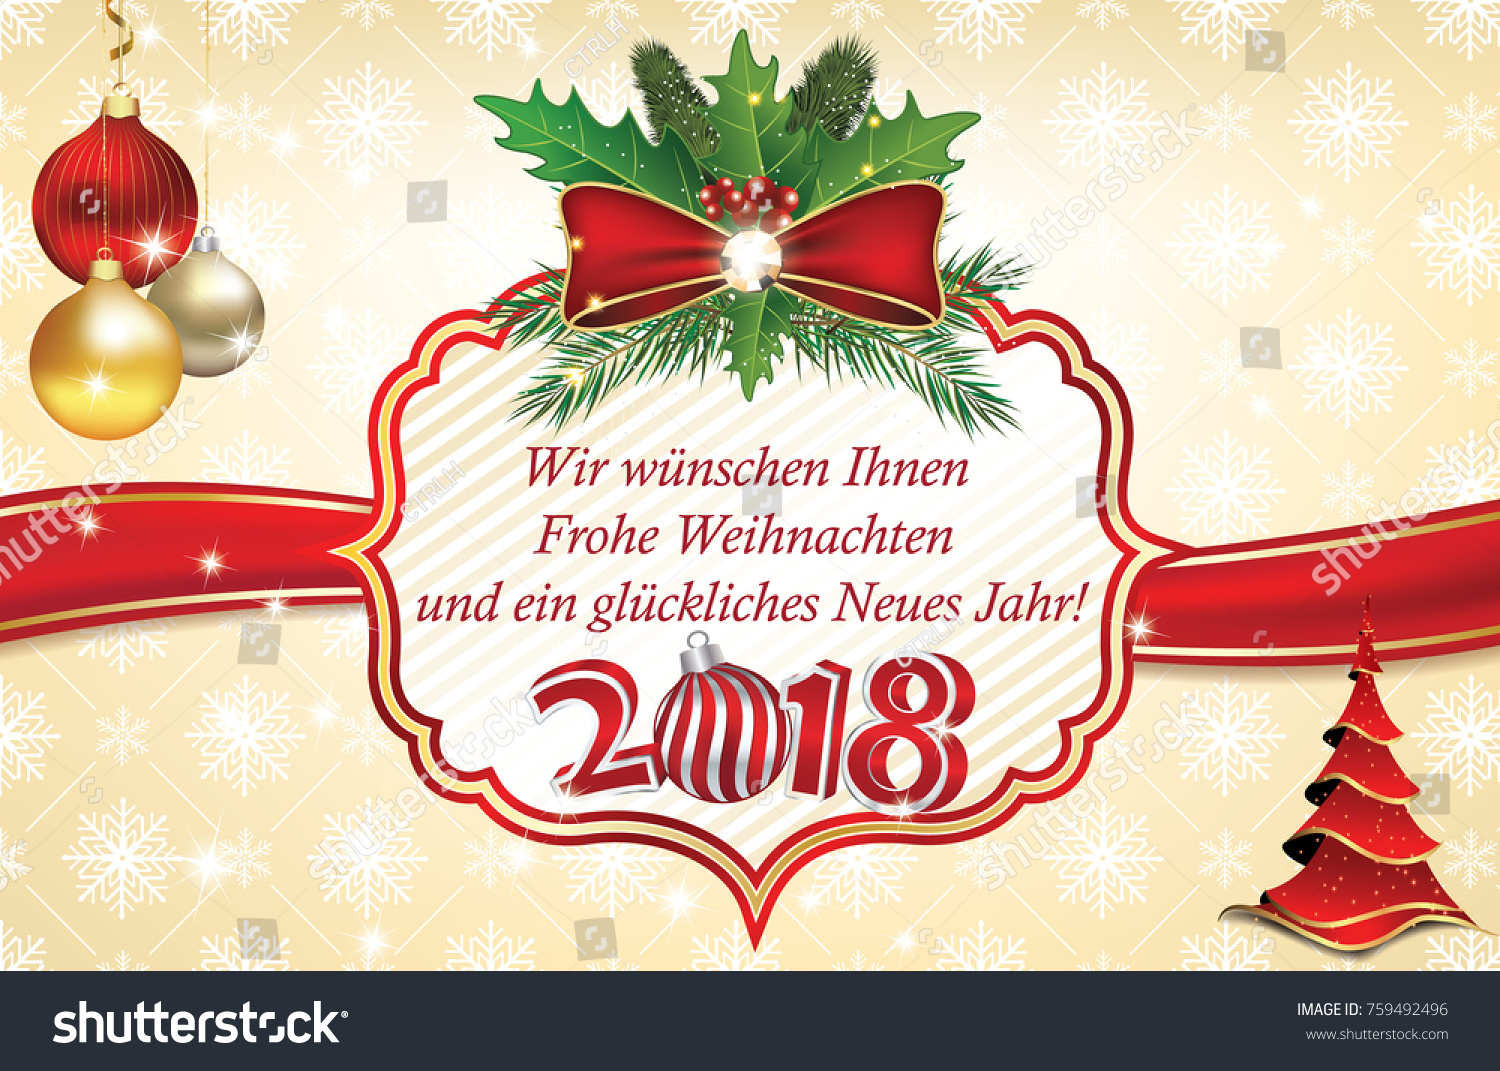 2018 christmas new year greeting card stock illustration 759492496 2018 christmas new year greeting card designed for the german speaking clients text translation kristyandbryce Image collections